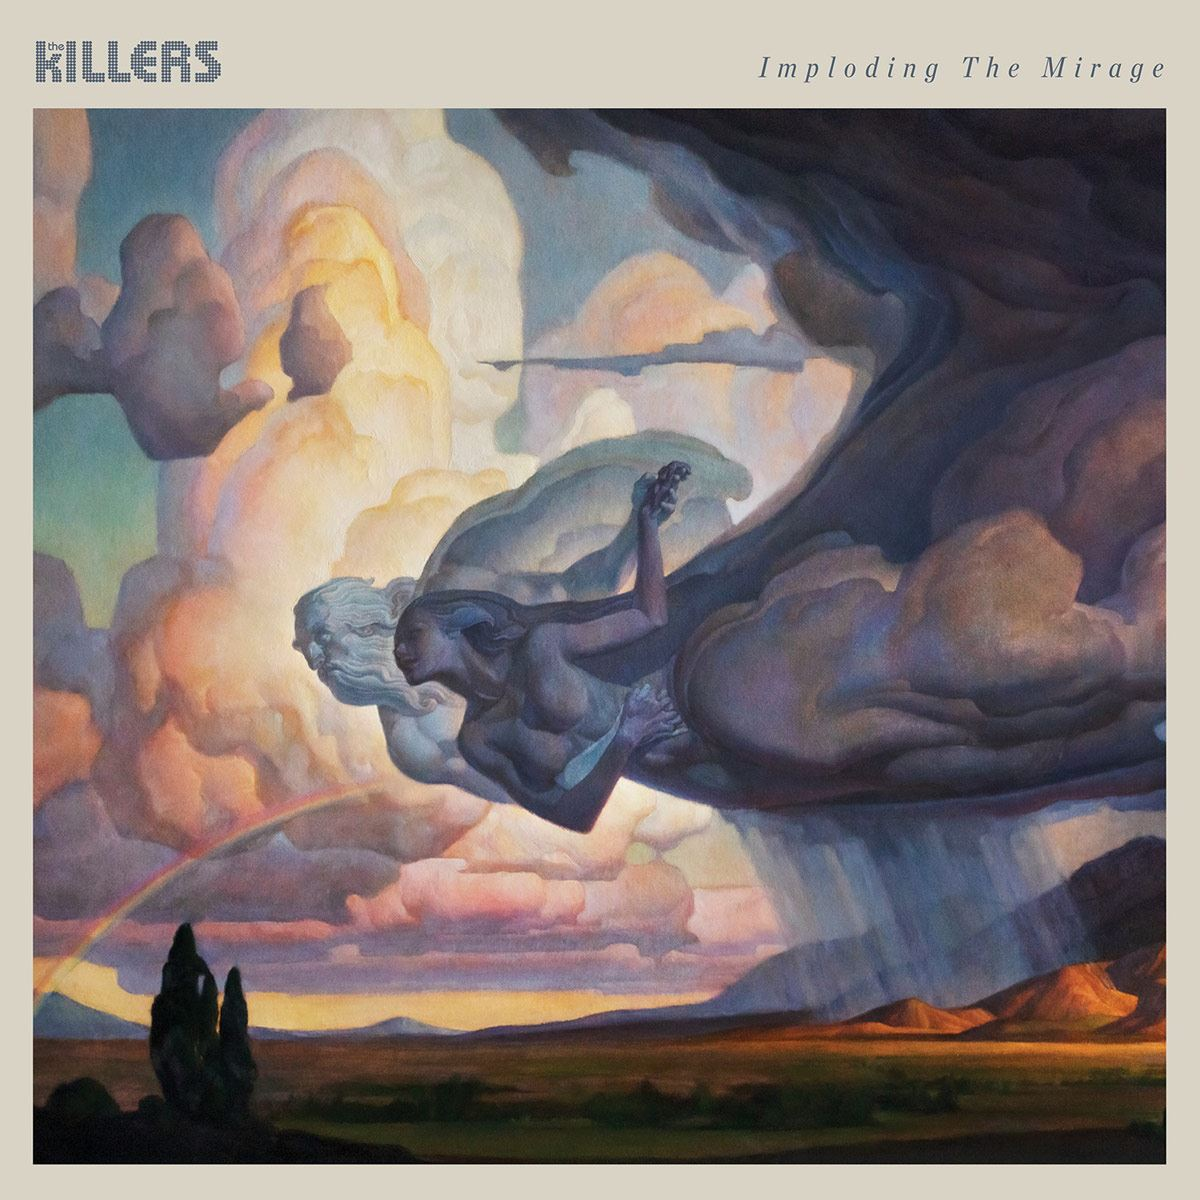 CD The Killers - Imploding The Mirage